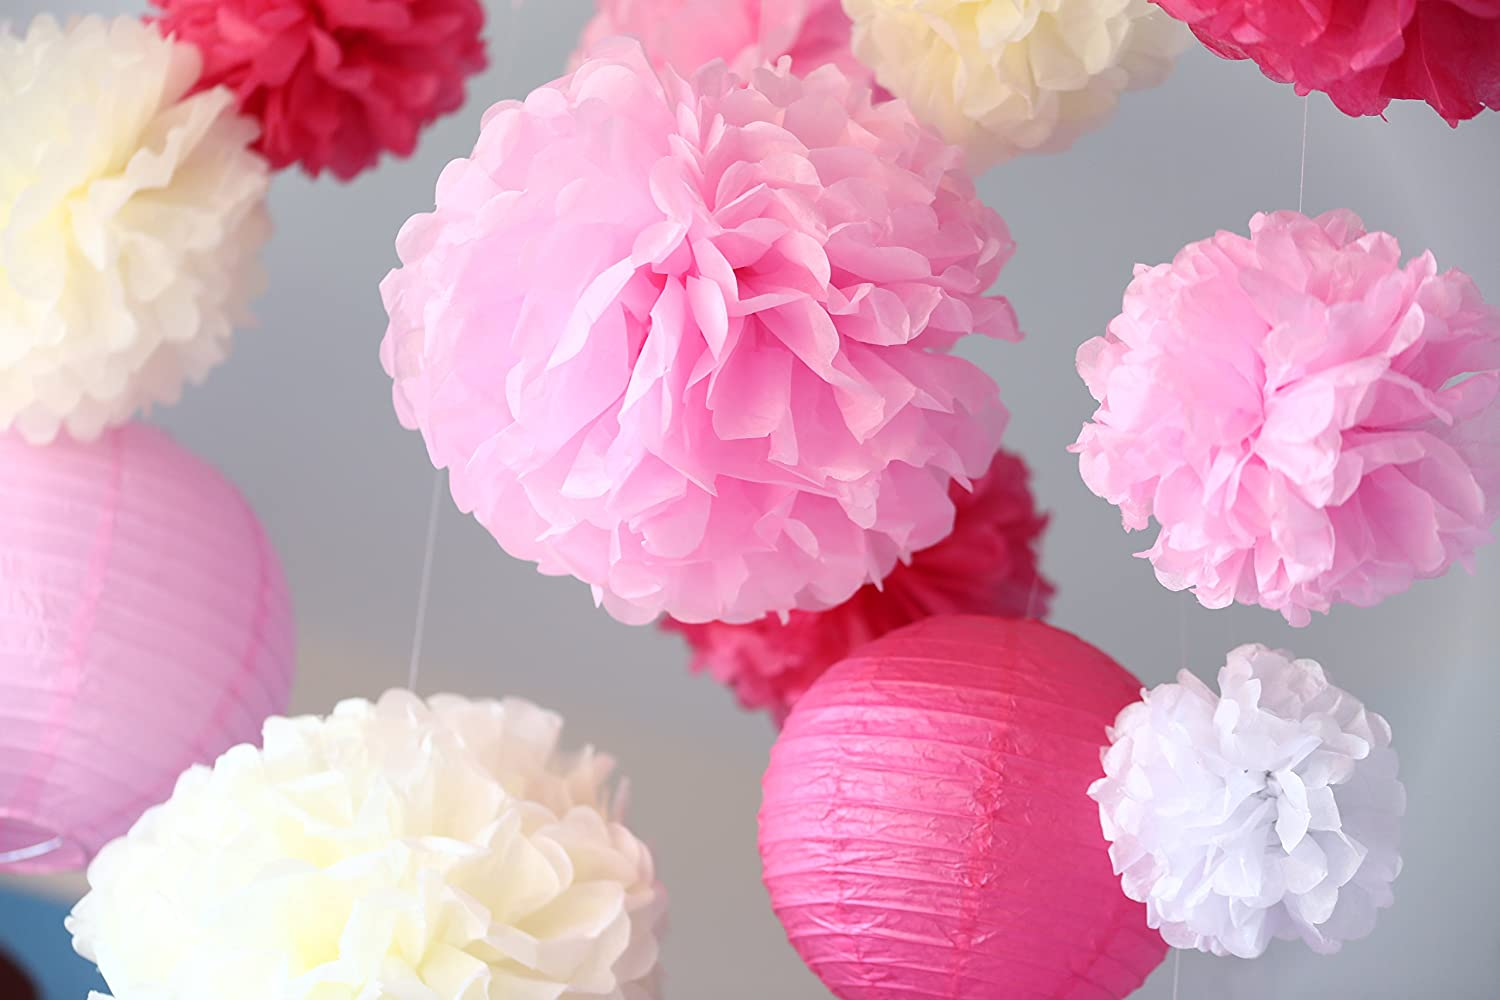 18 Piece Tissue Paper Pom Poms and Paper Lanterns Party and Wedding Decoration. London Homeware Group